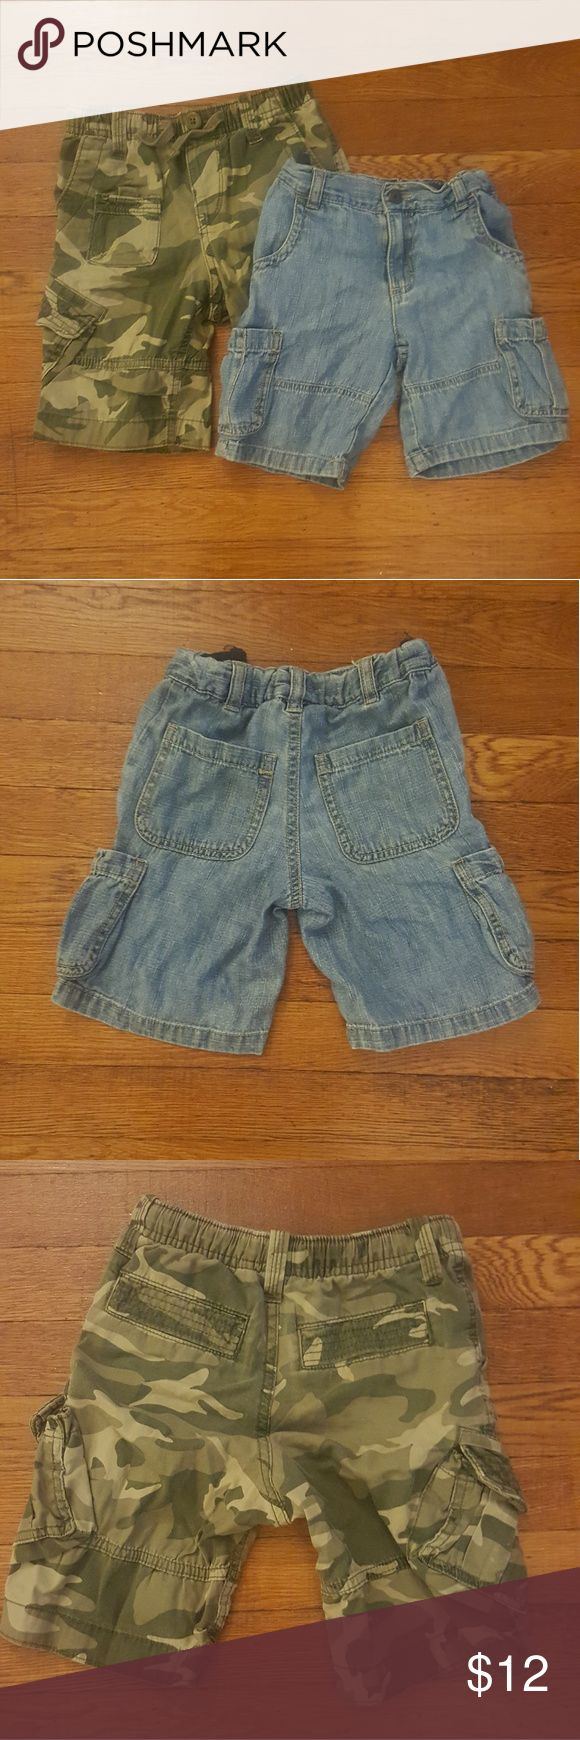 Gap and Cherokee cargo short bundle Camouflage shorts with real drawstring are size 3 by Gap; lightweight denim shorts with adjustable waist are 3T by Cherokee both in great condition from a pet/smoke free home GAP Bottoms Shorts